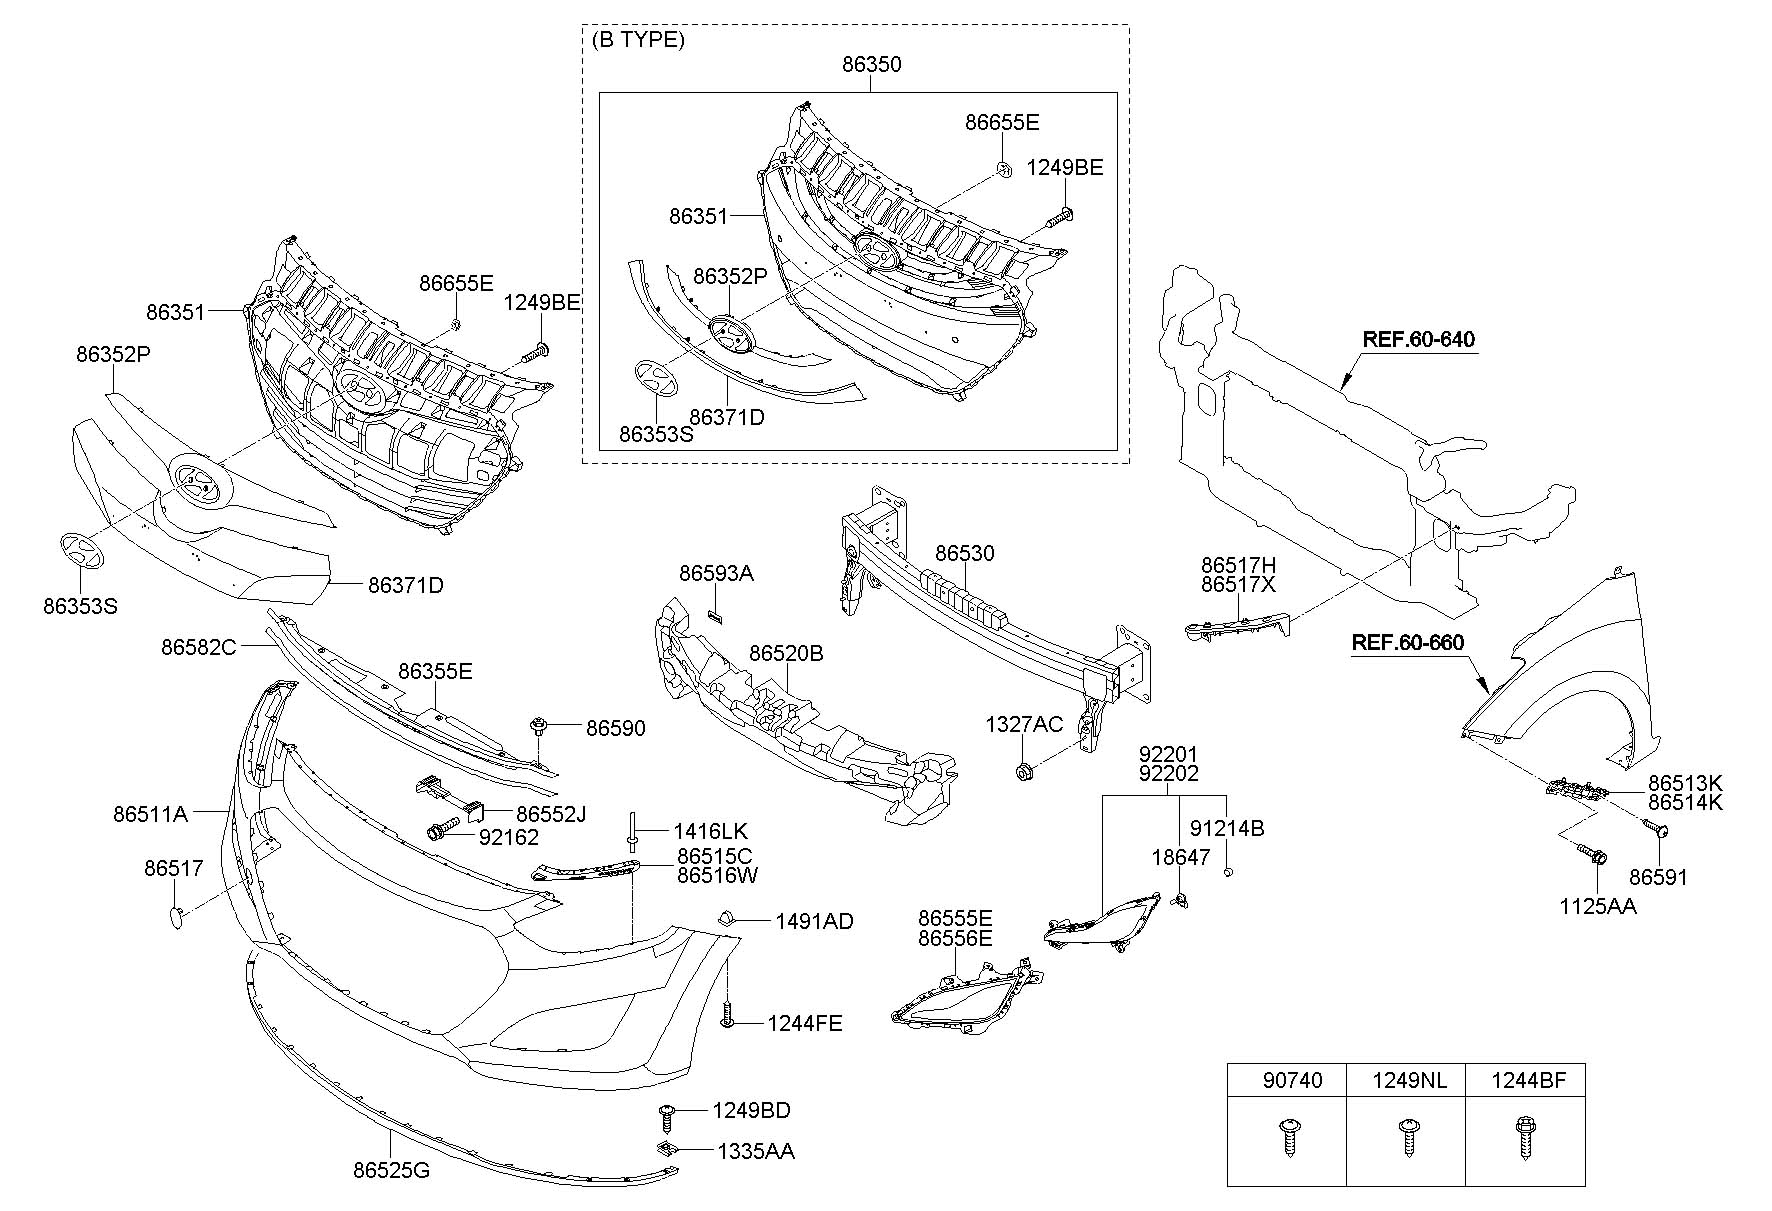 hyundai front bumper hyundai accent central locking wiring diagram 2013 hyundai accent front bumper parts diagram